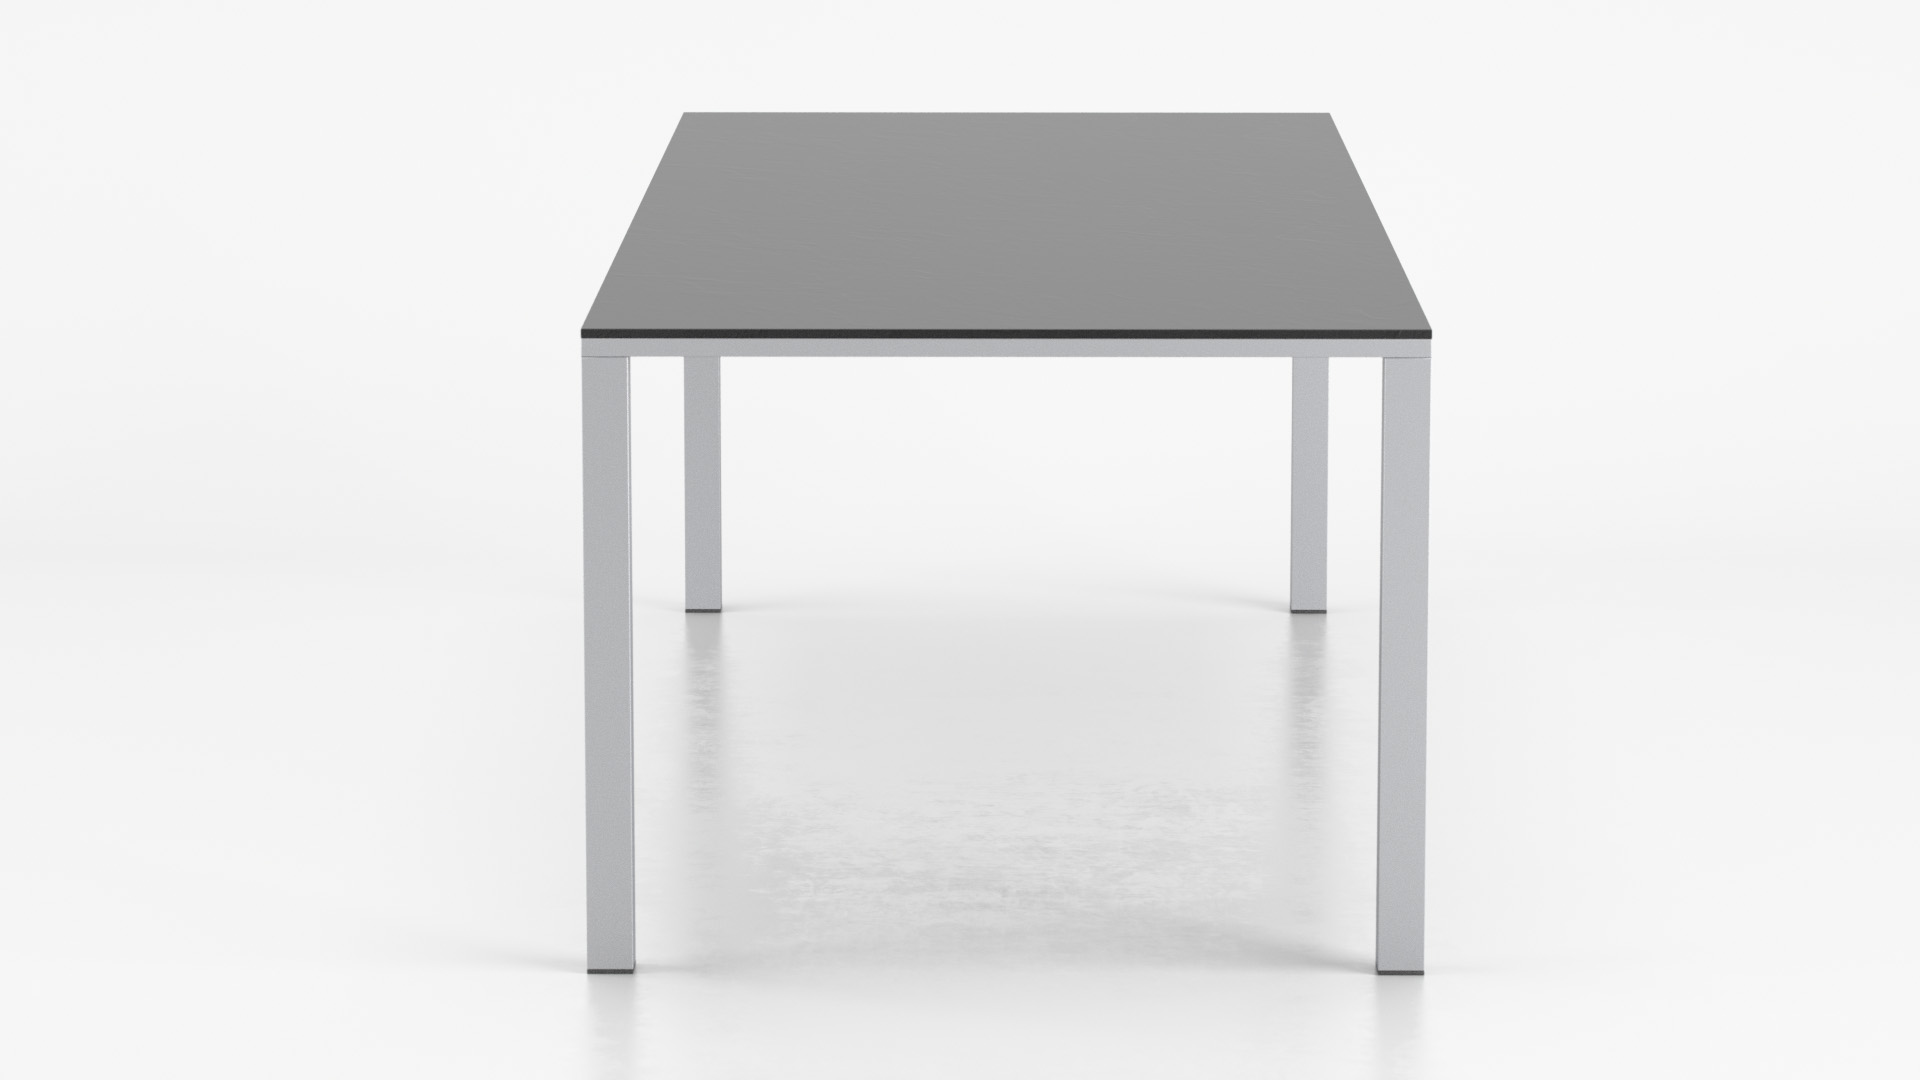 Tribu_Essentiel_Table_WhiteSet_01_0002